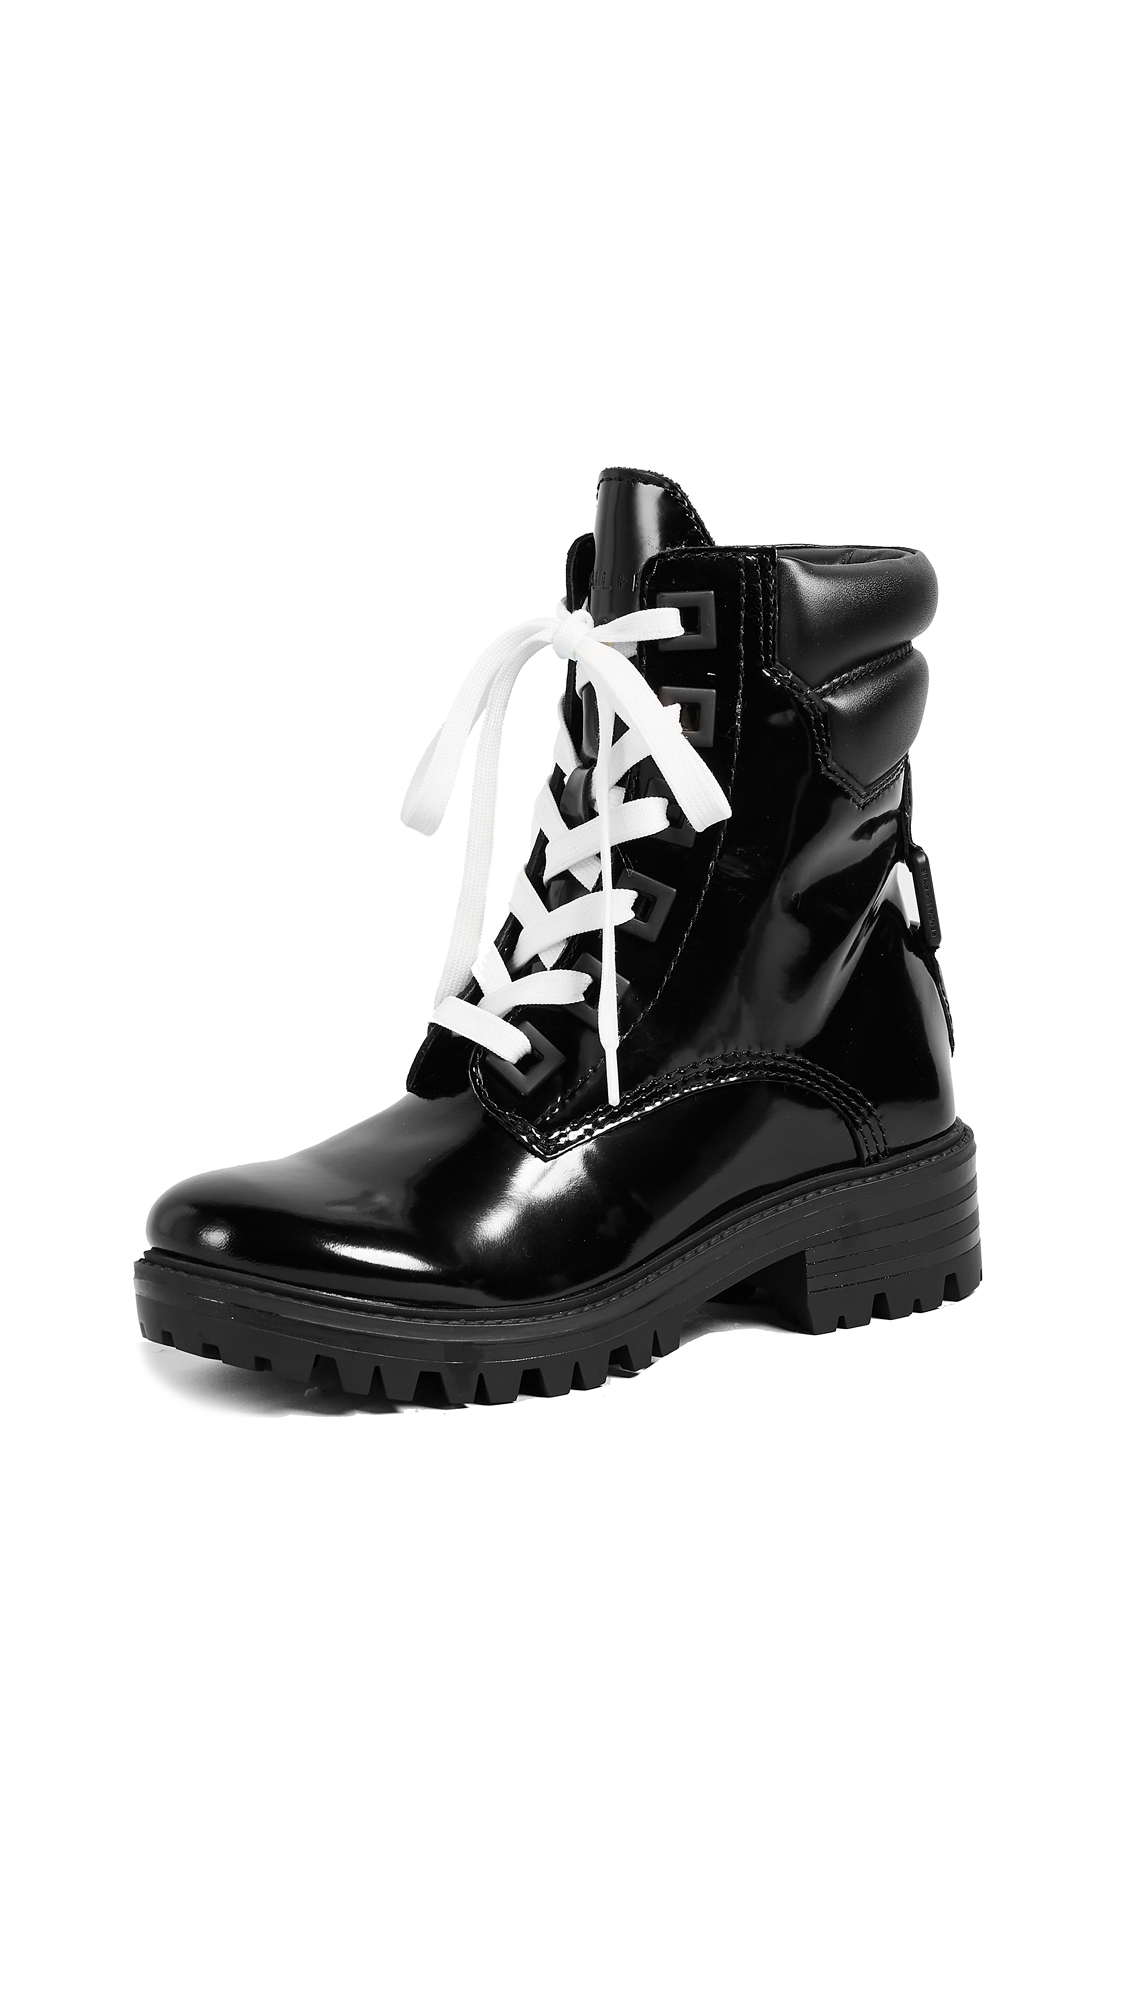 KENDALL + KYLIE East Hiker Boots - Black